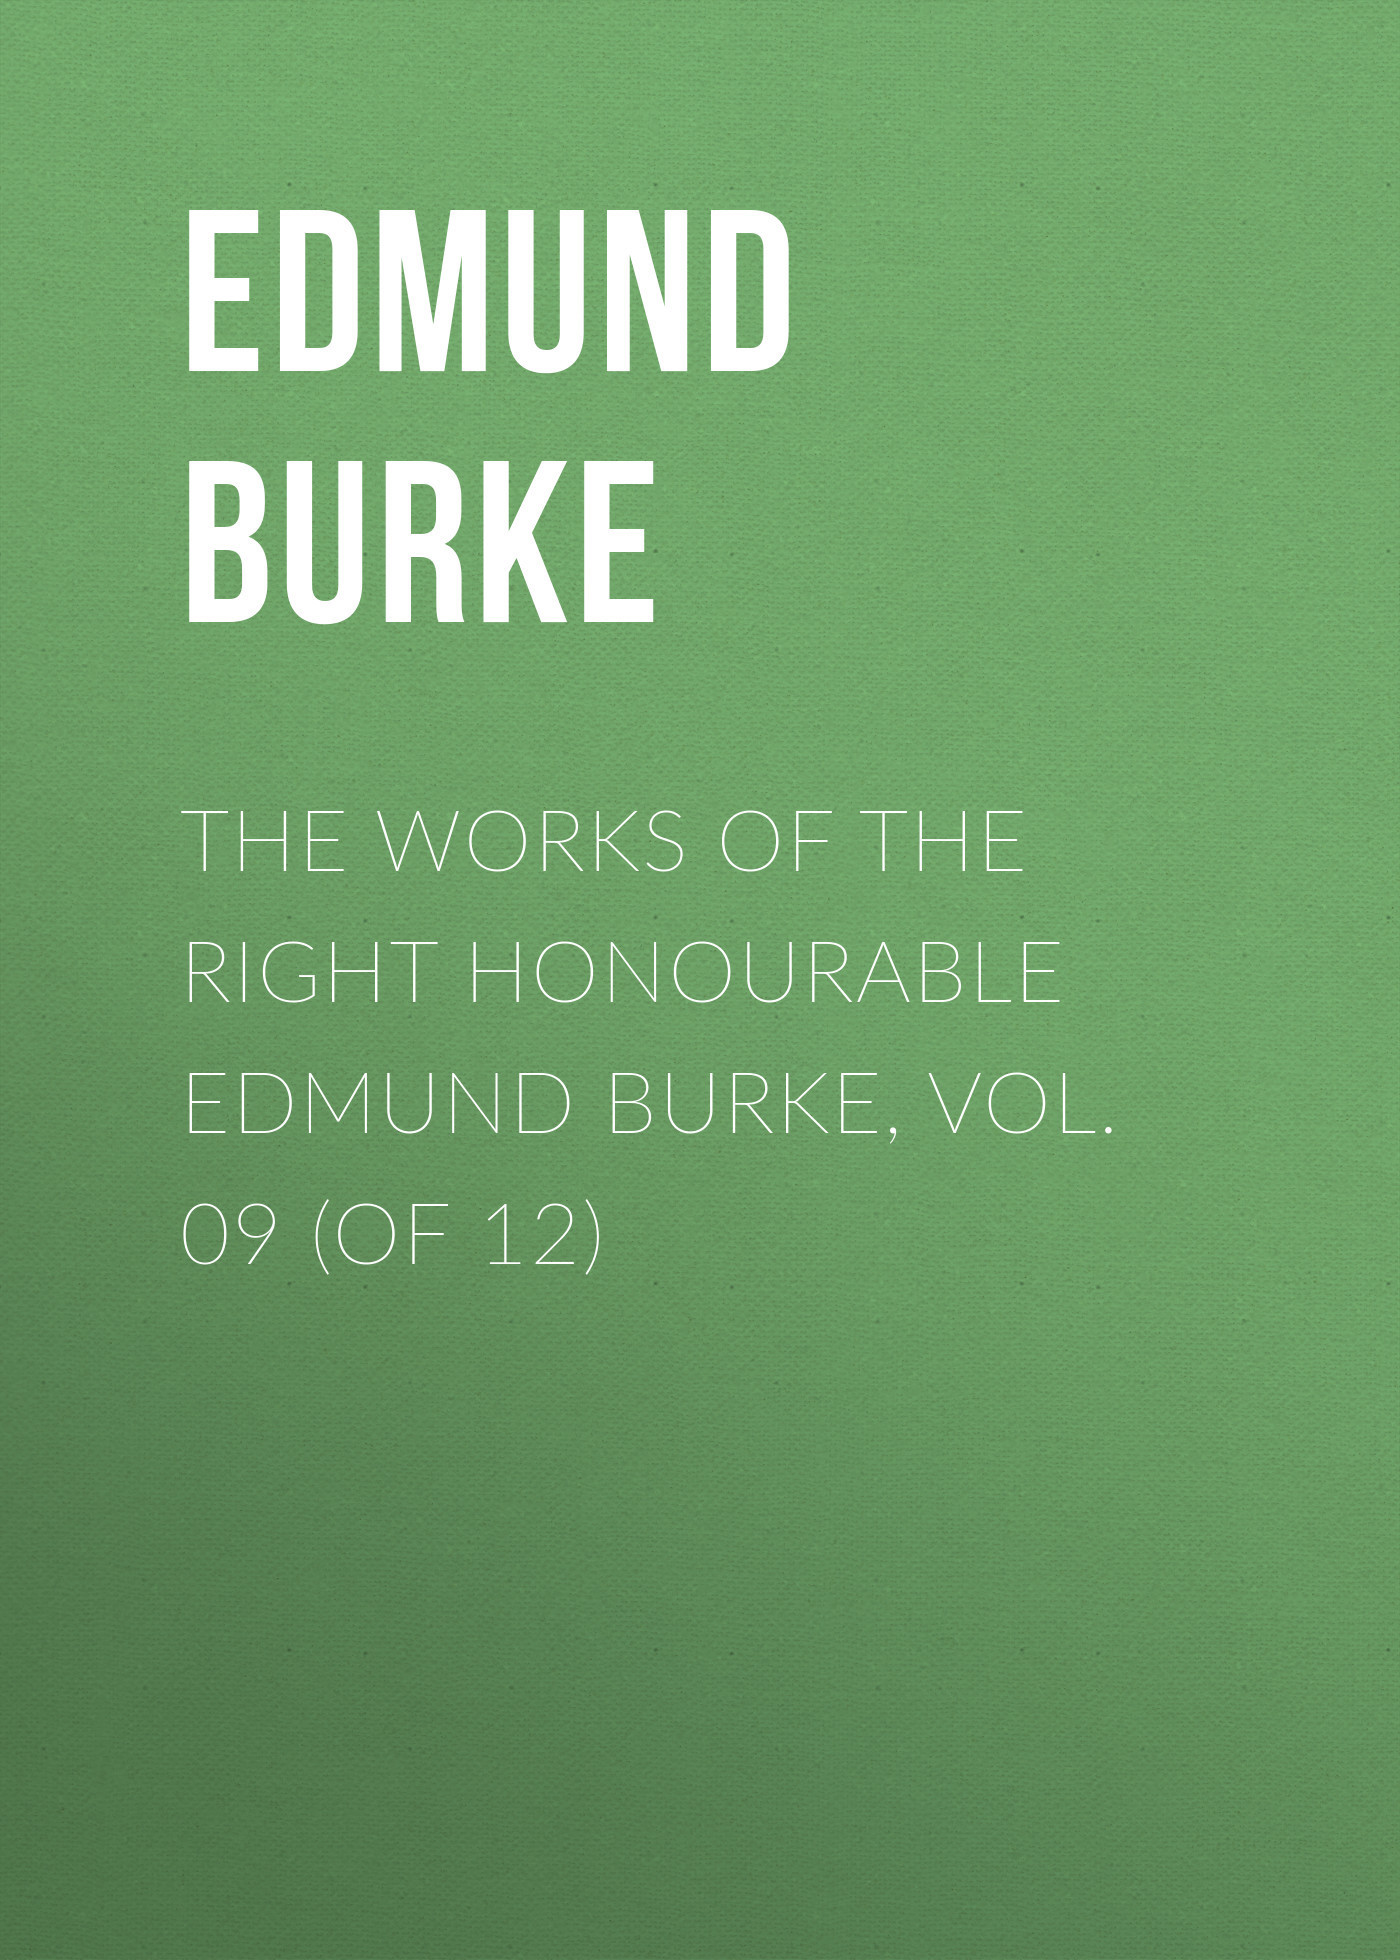 Edmund Burke The Works of the Right Honourable Edmund Burke, Vol. 09 (of 12) usb hearing aid auidphones my 33 microphone rechargeable amplifier behind the ear 2 pieces for right ear and left ear